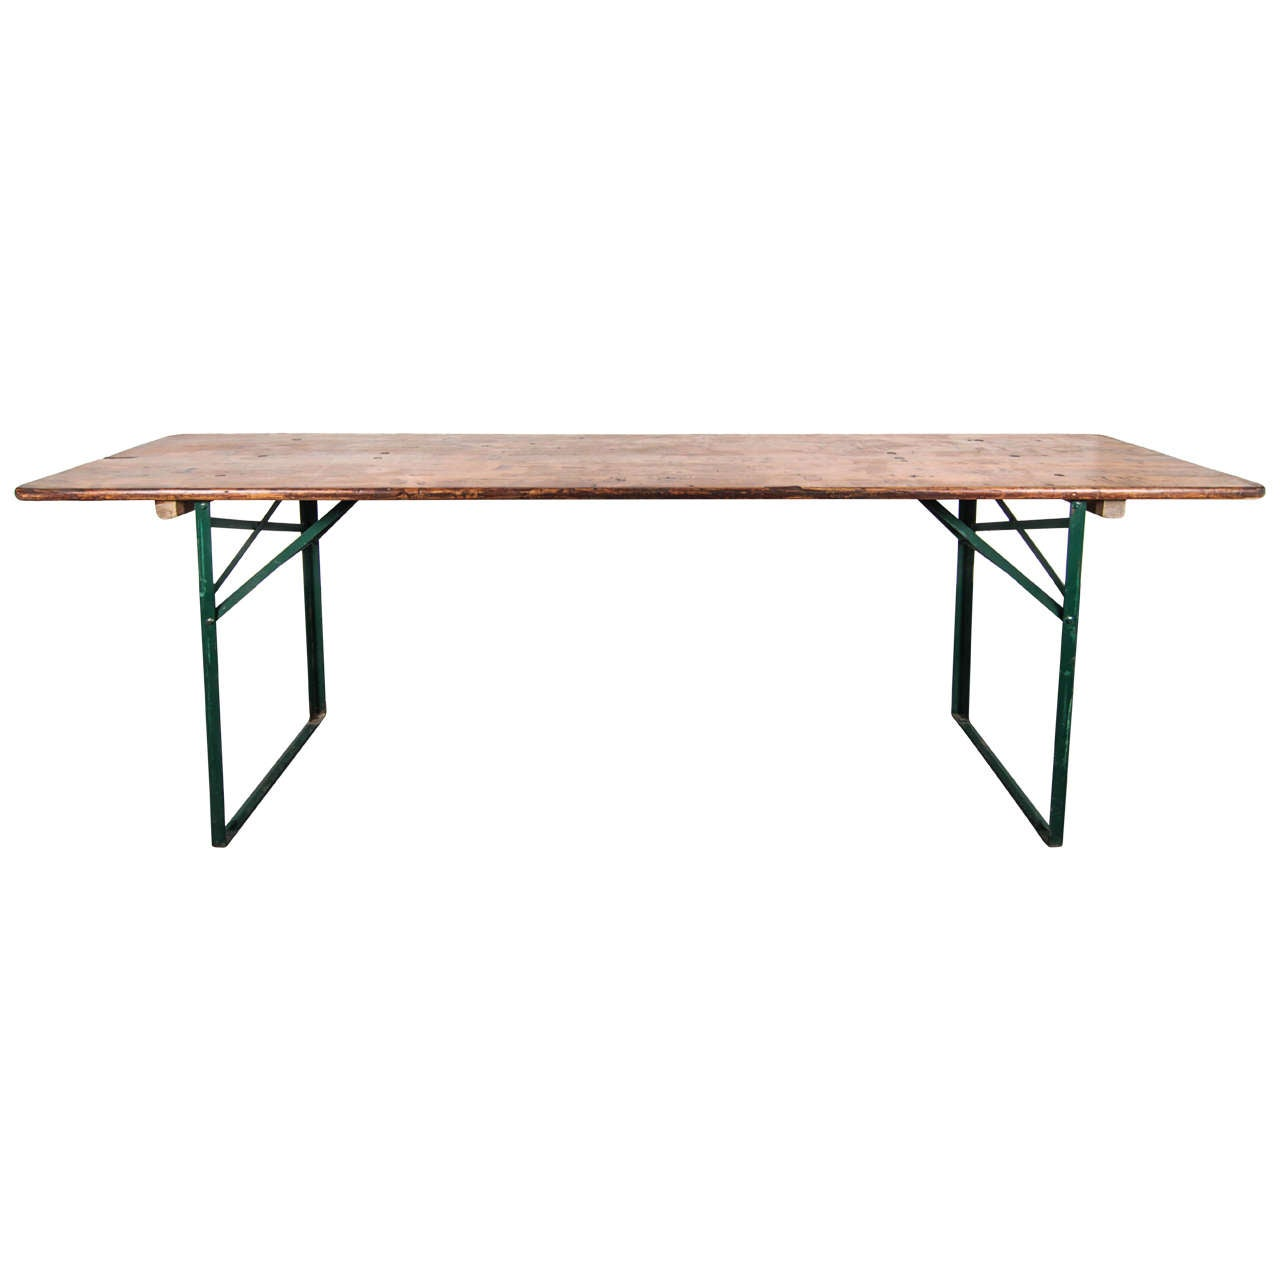 USA Table And Bench With Metal Legs At 1stdibs. Full resolution  image, nominally Width 1280 Height 1280 pixels, image with #965A35.